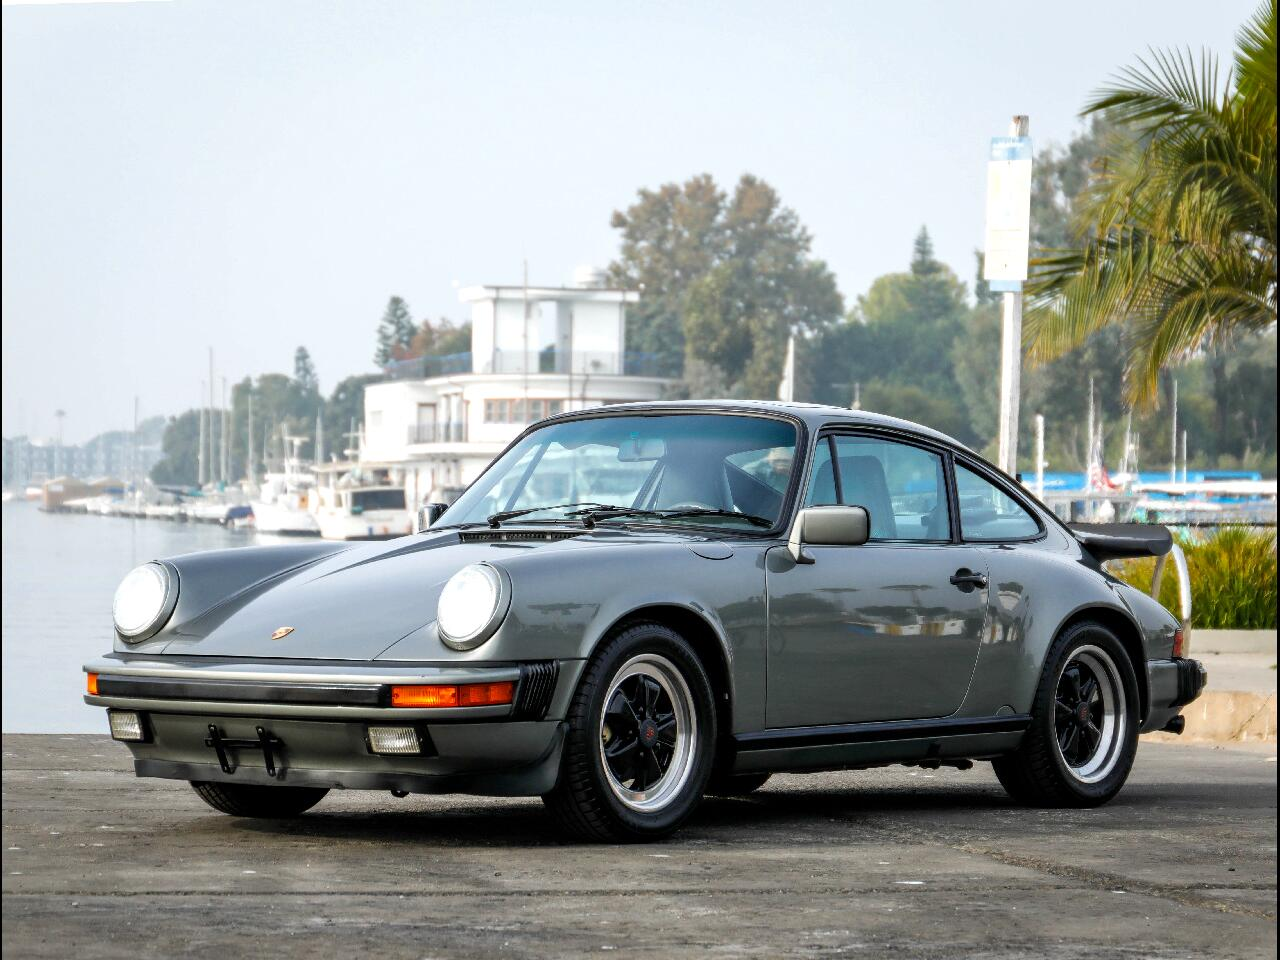 Classic Cars Exotic Cars Sports Cars For Sale Marina Del